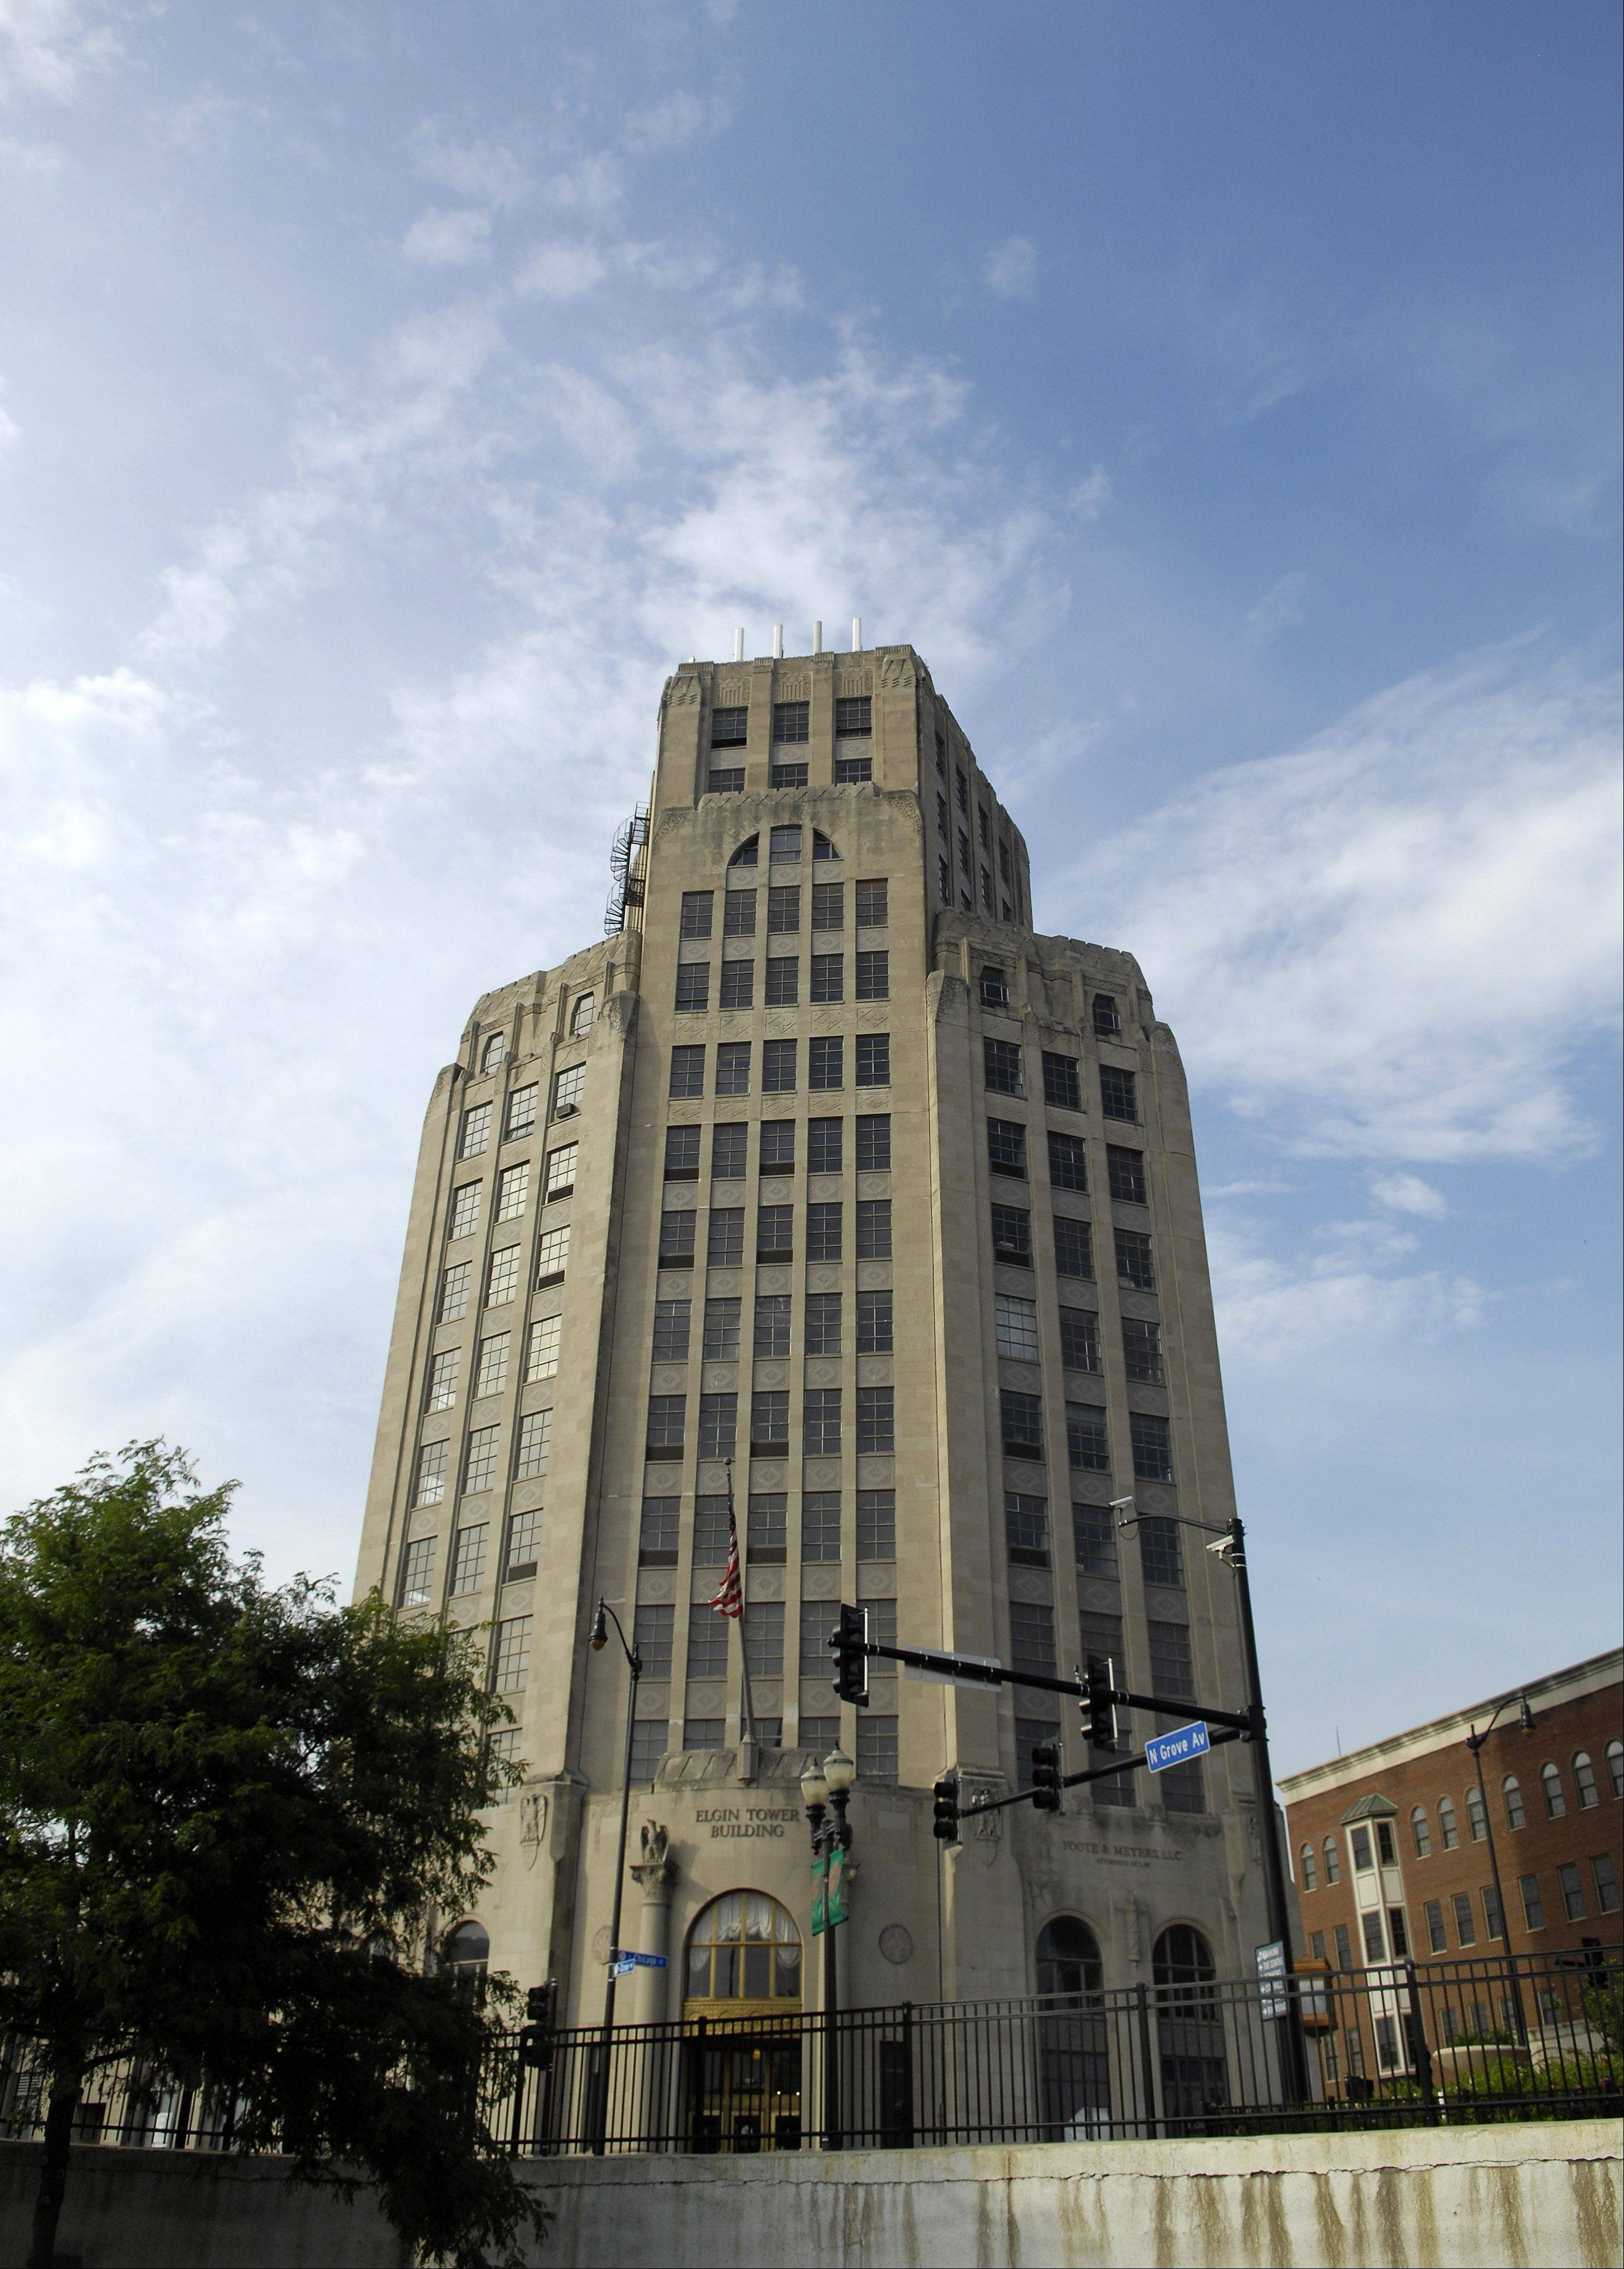 The Elgin Tower Building is down to six tenants after a water leak last Friday caused two to move out this week.